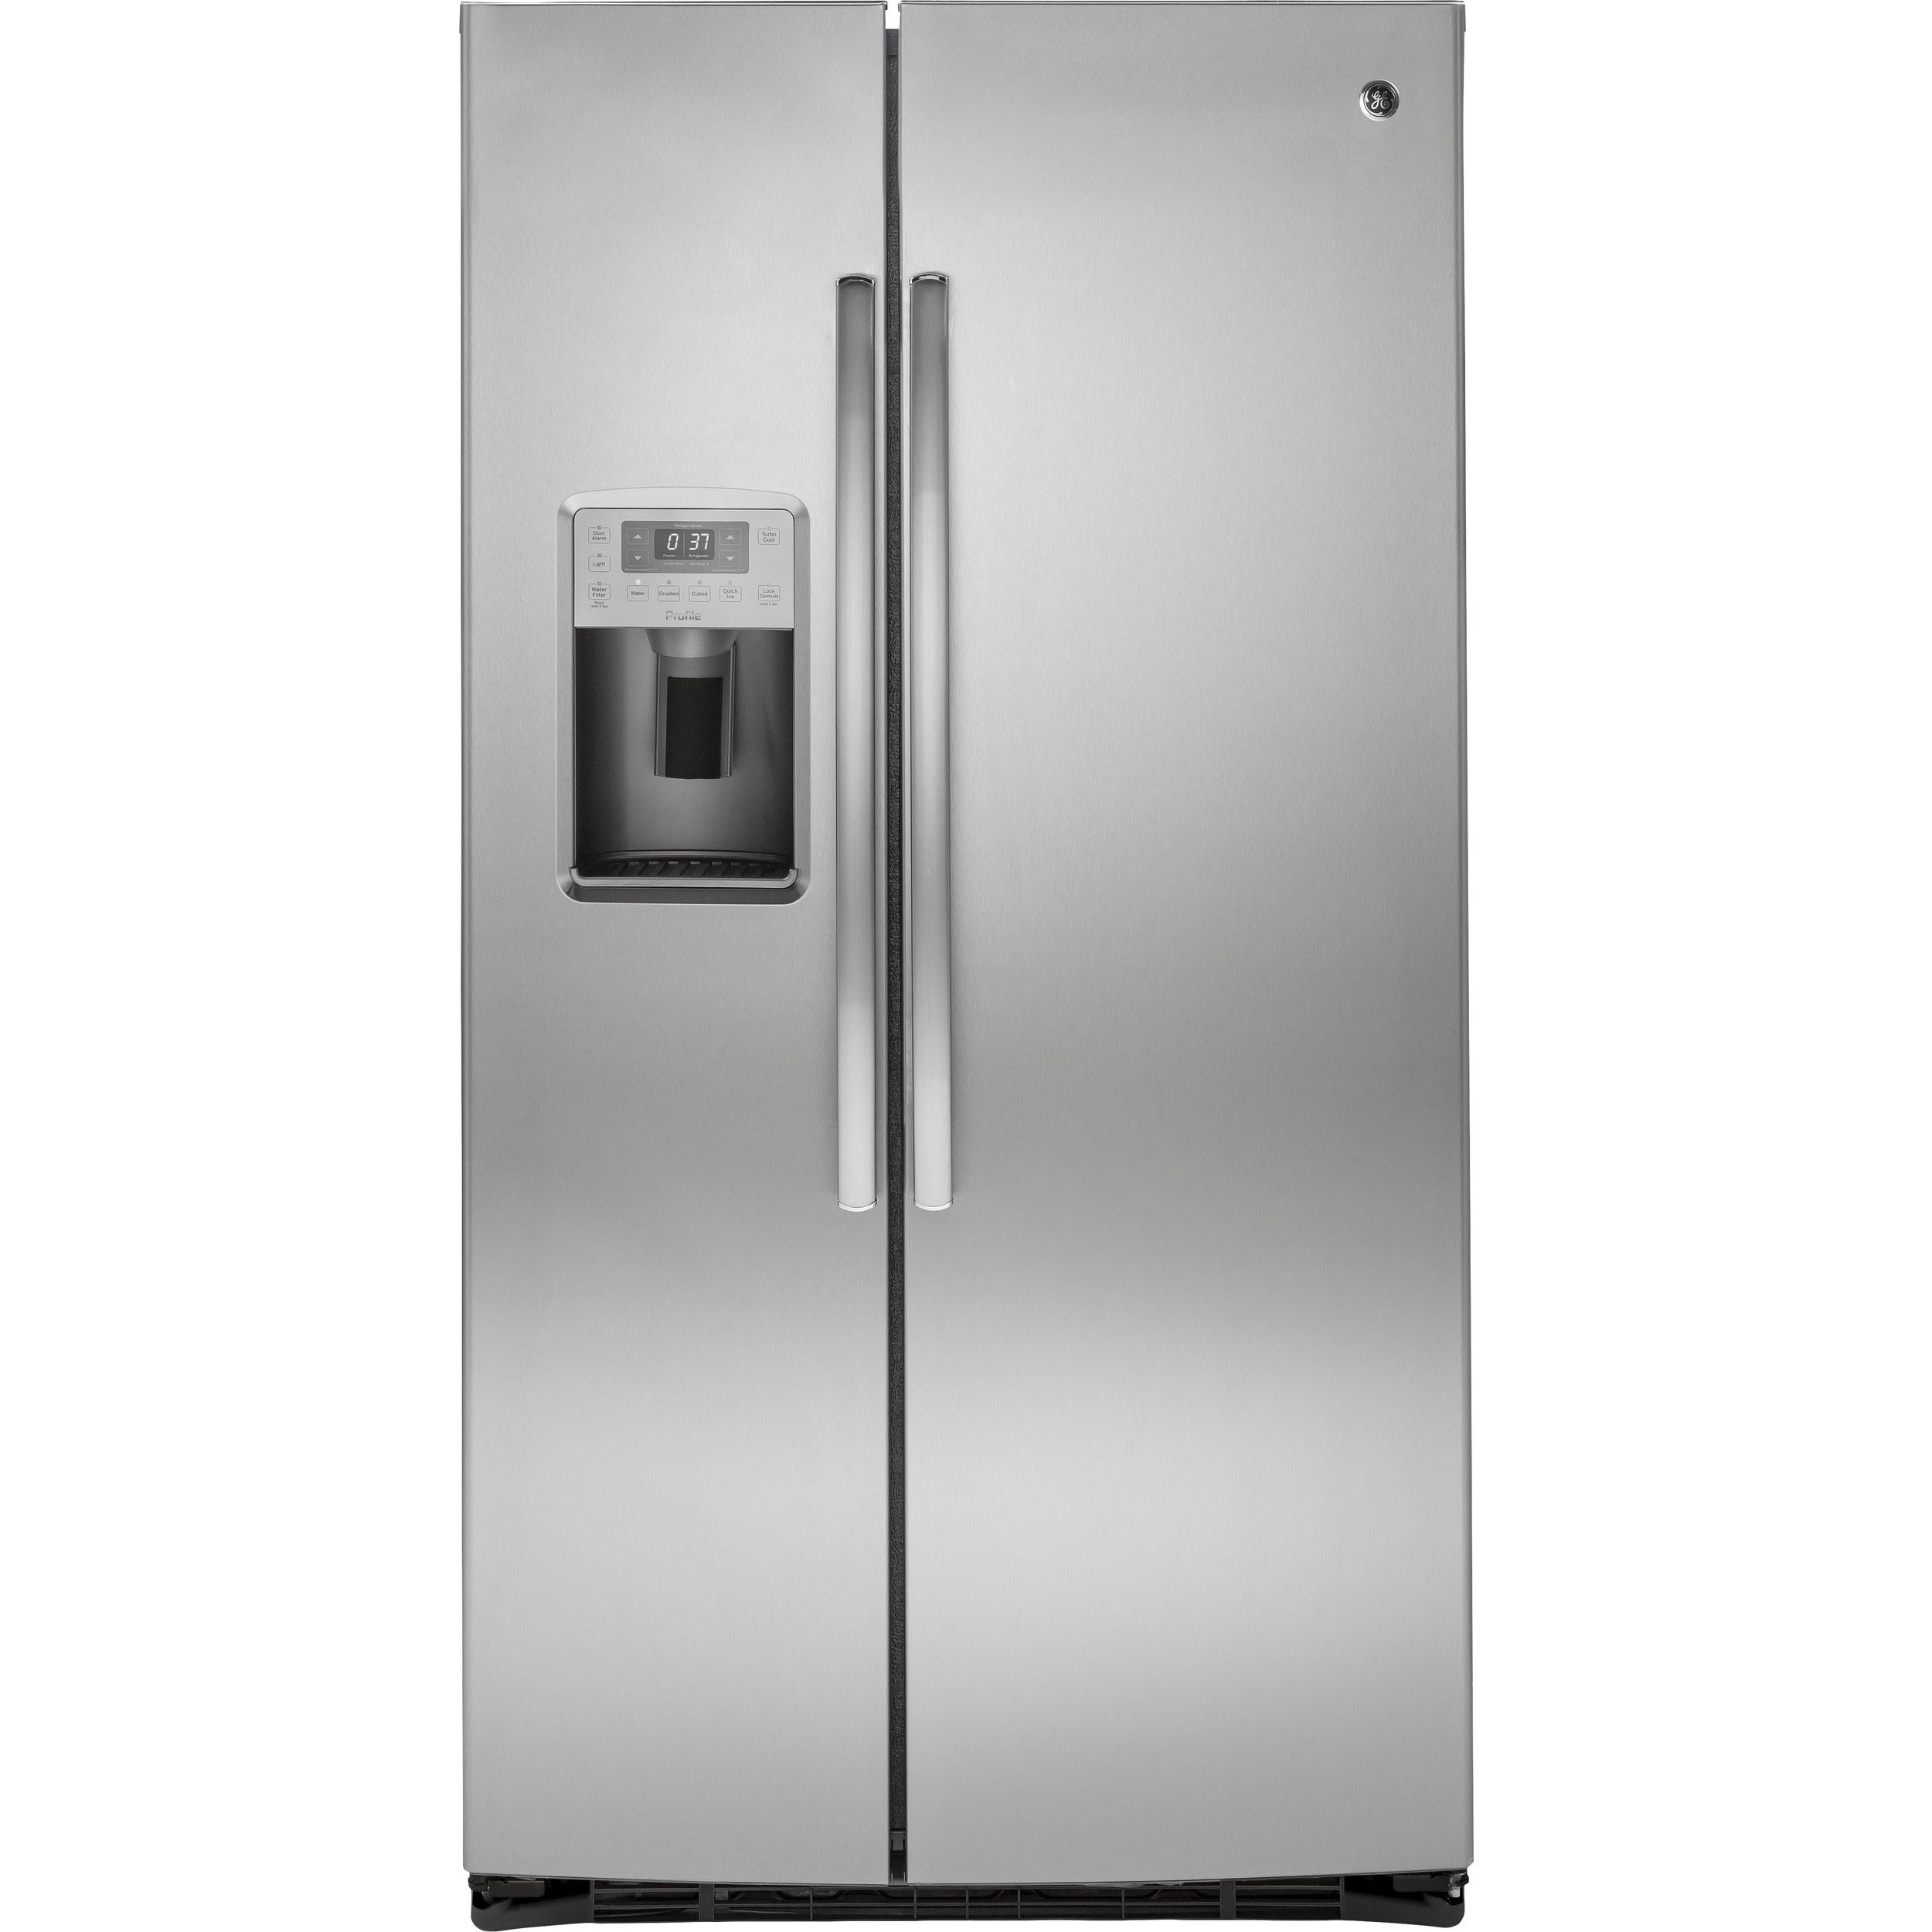 GE Profile Seres Energy Star 25.4 Cubic Feet Side-by-side...